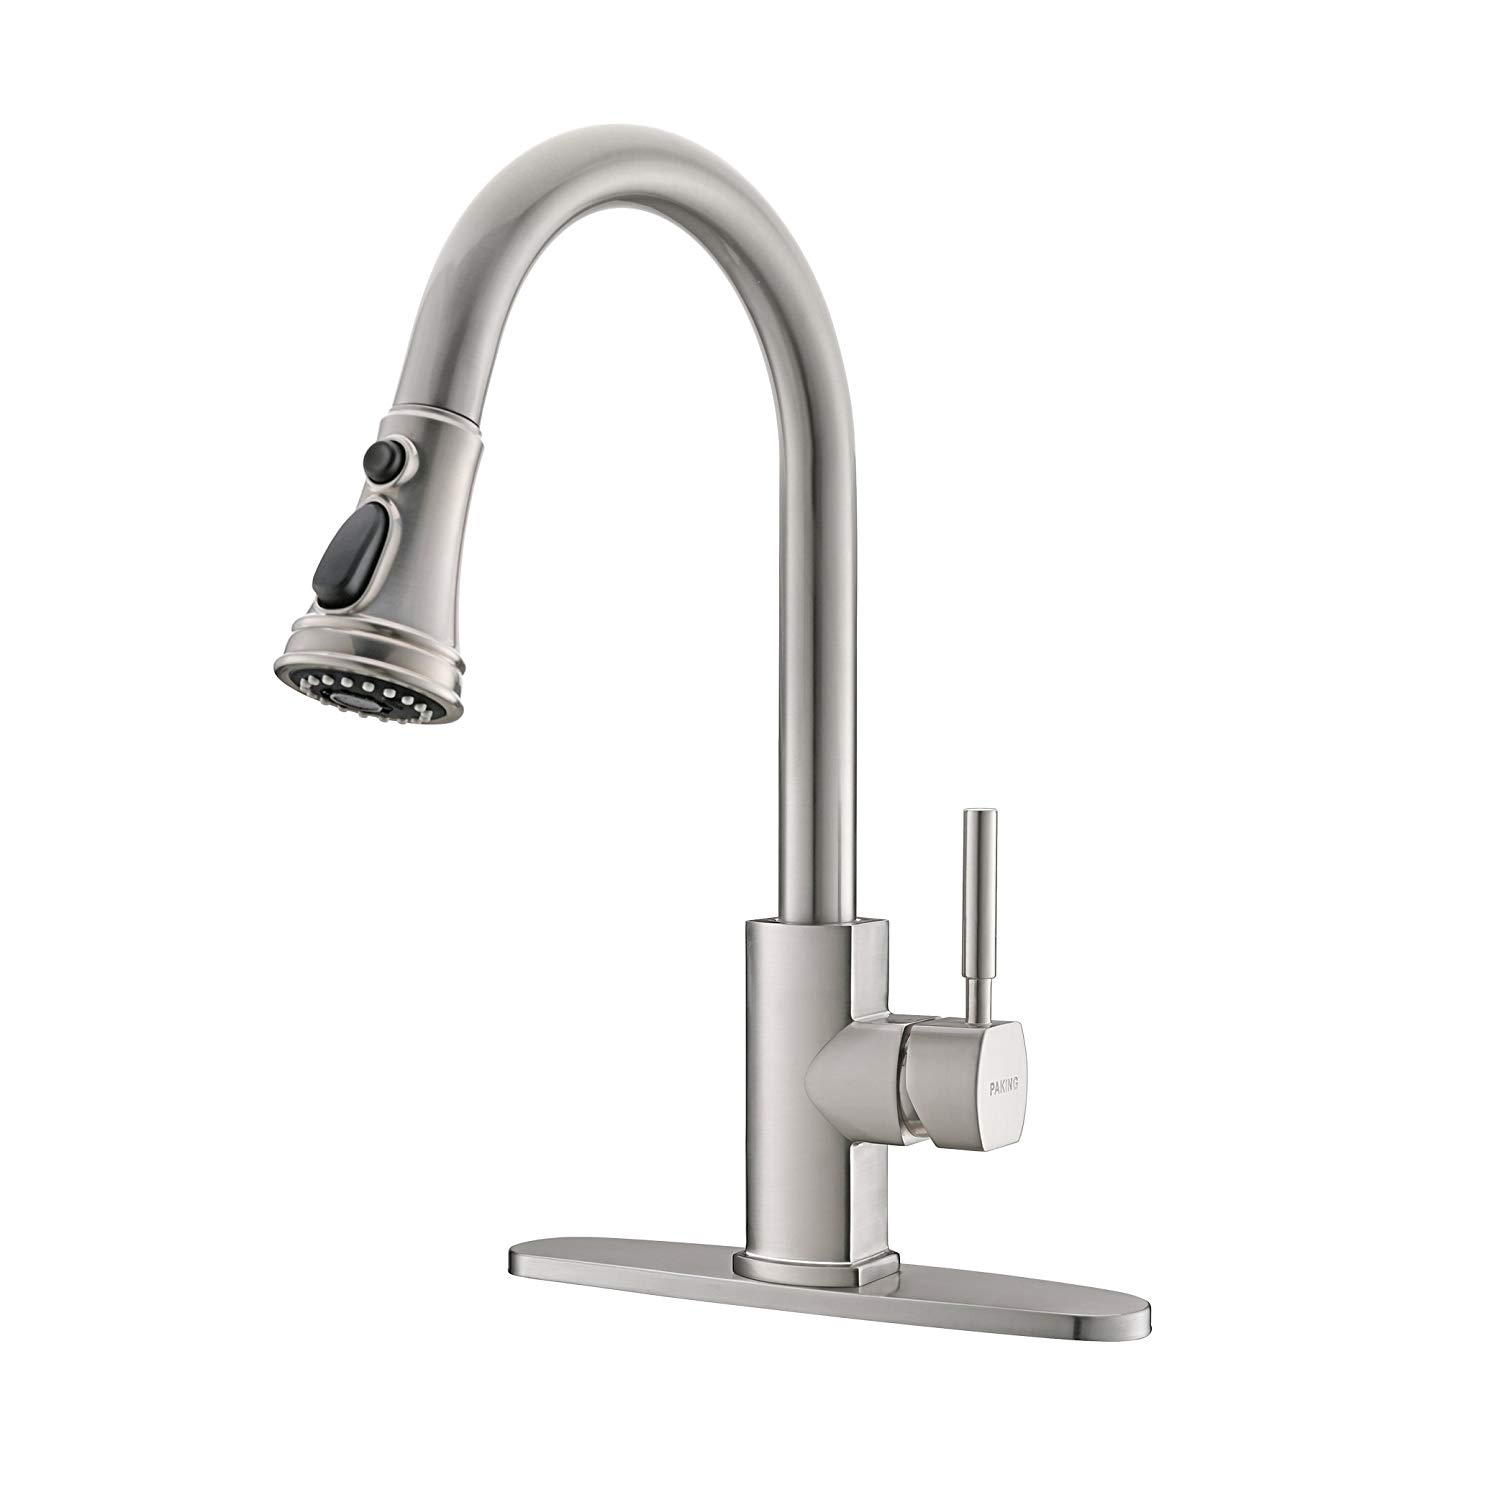 Cheap Bar Faucet Brushed Nickel Find Bar Faucet Brushed Nickel